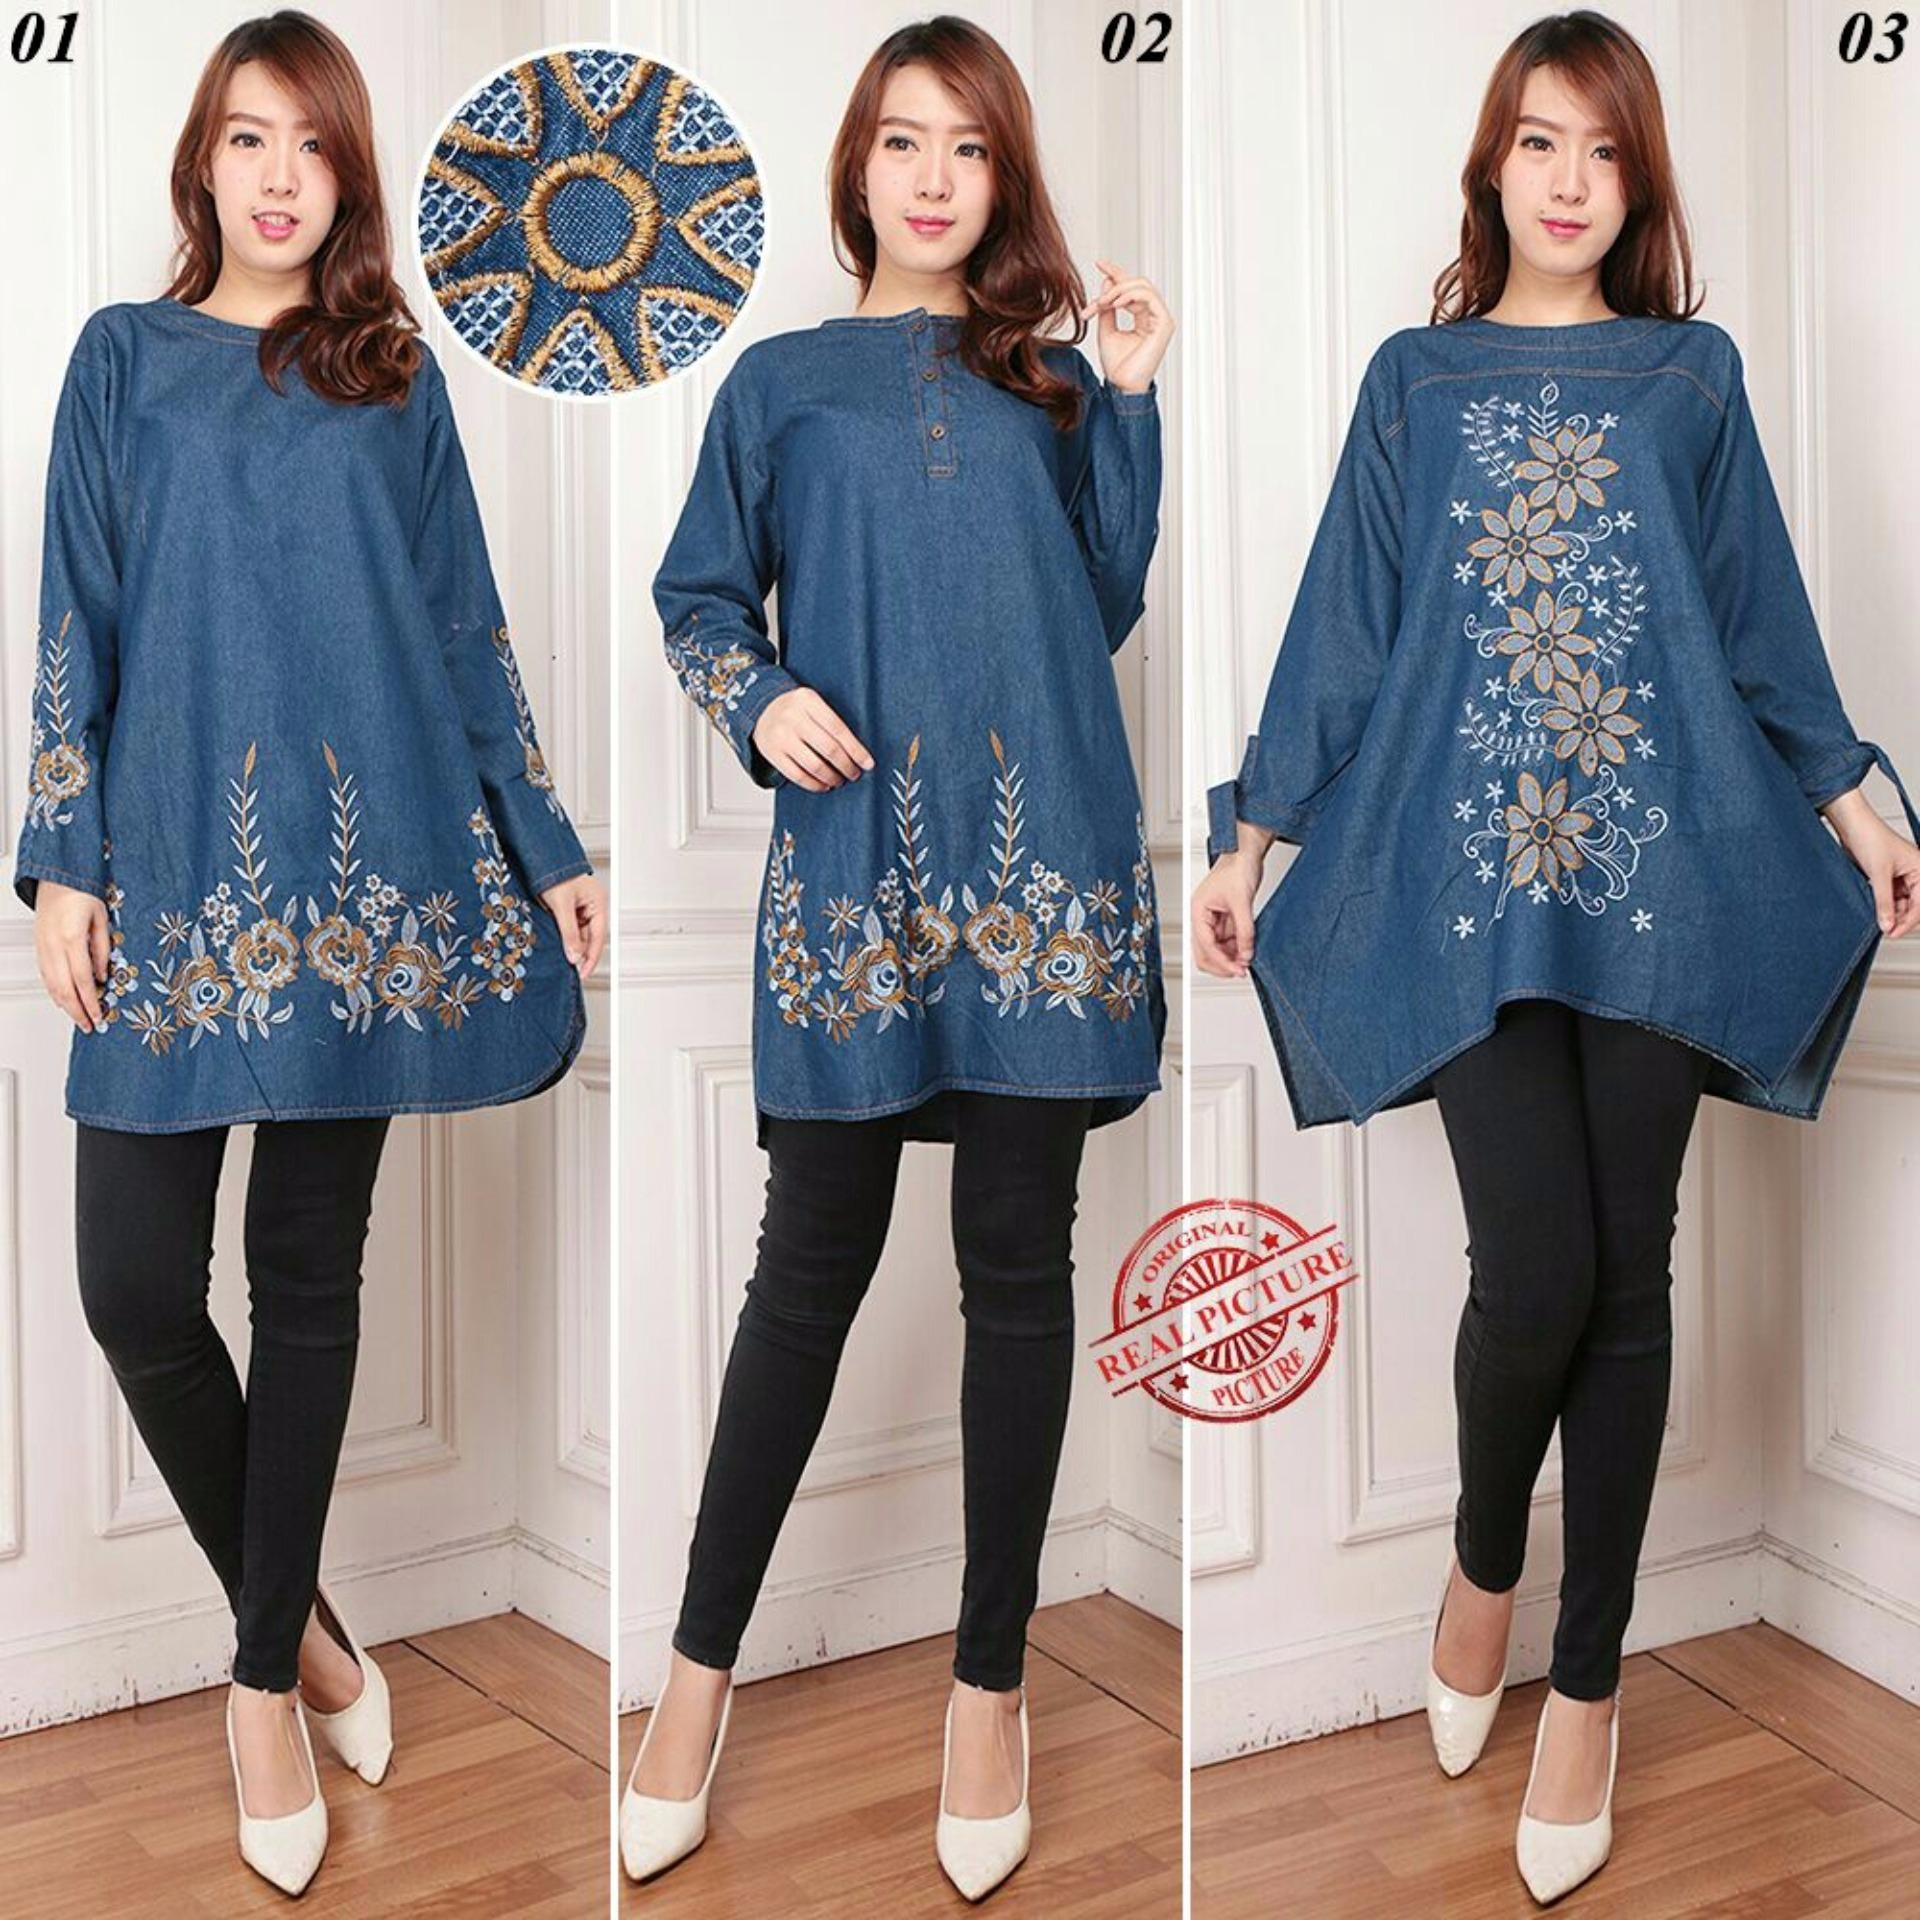 Diskon Cj Collection Atasan Blouse Kemeja Tunik Wanita Jumbo Long Tunik Shirt Trinisa 01